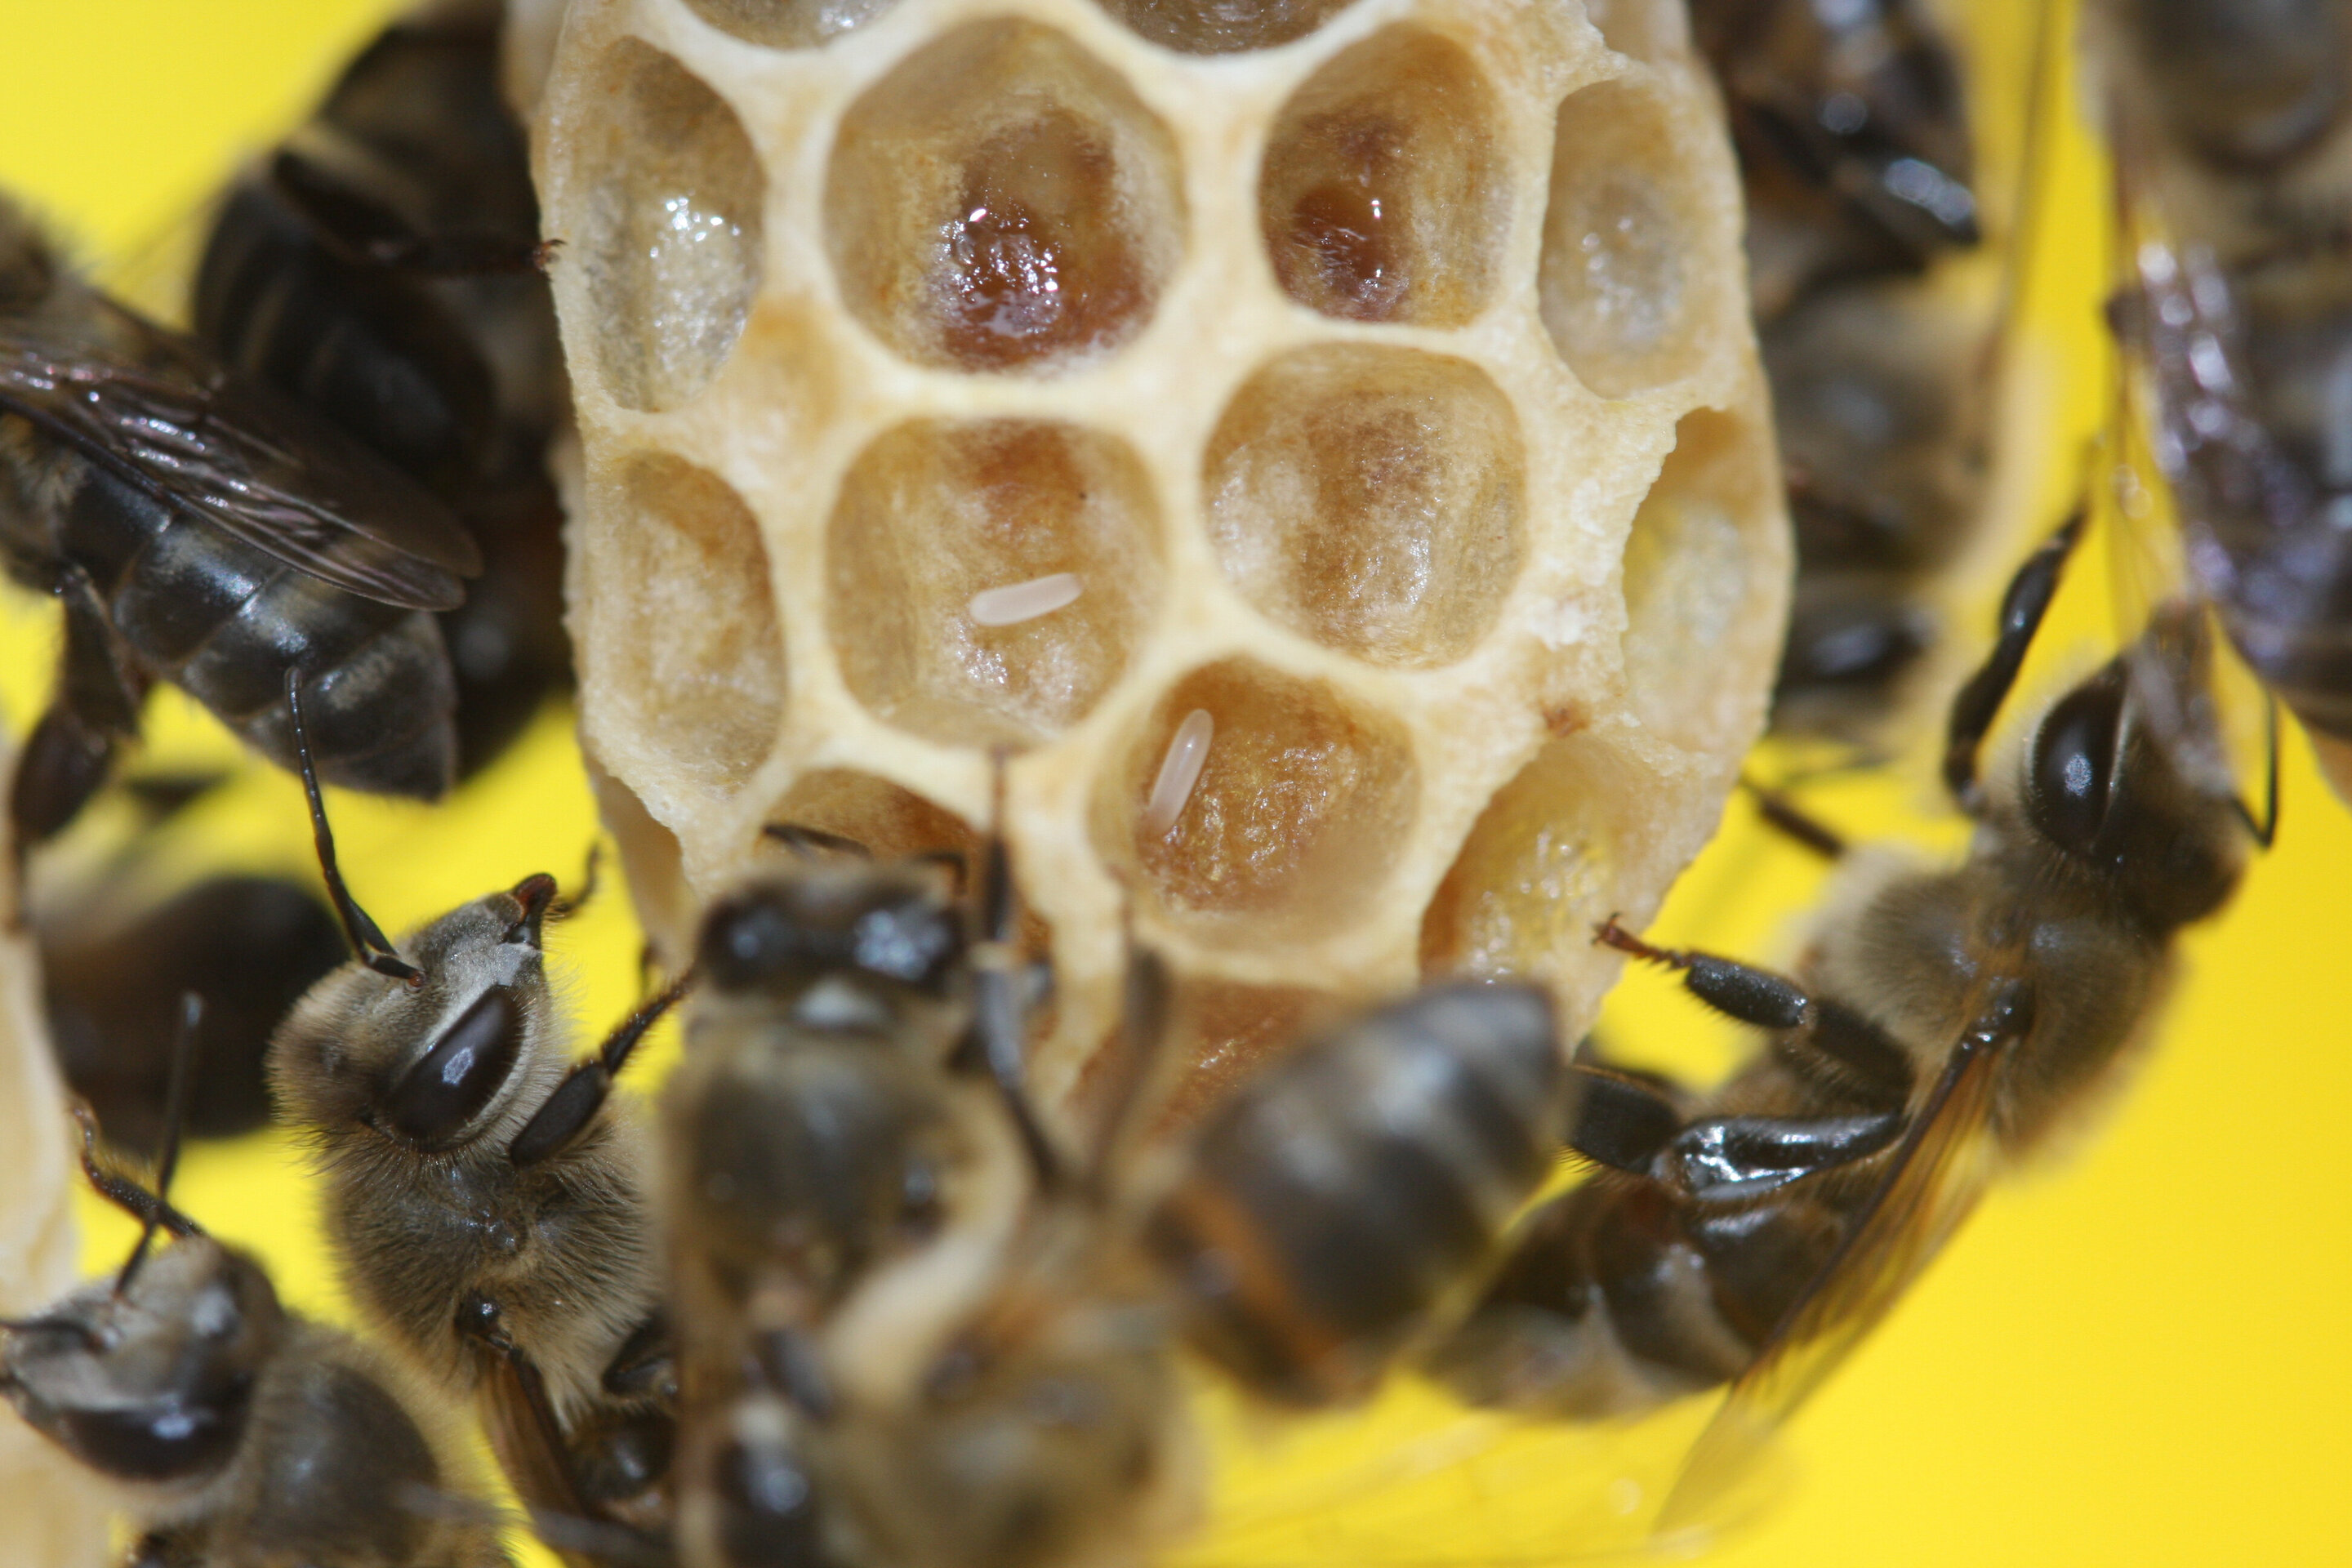 Researchers Discover A Gene In Honey Bees That Causes Virgin Birth